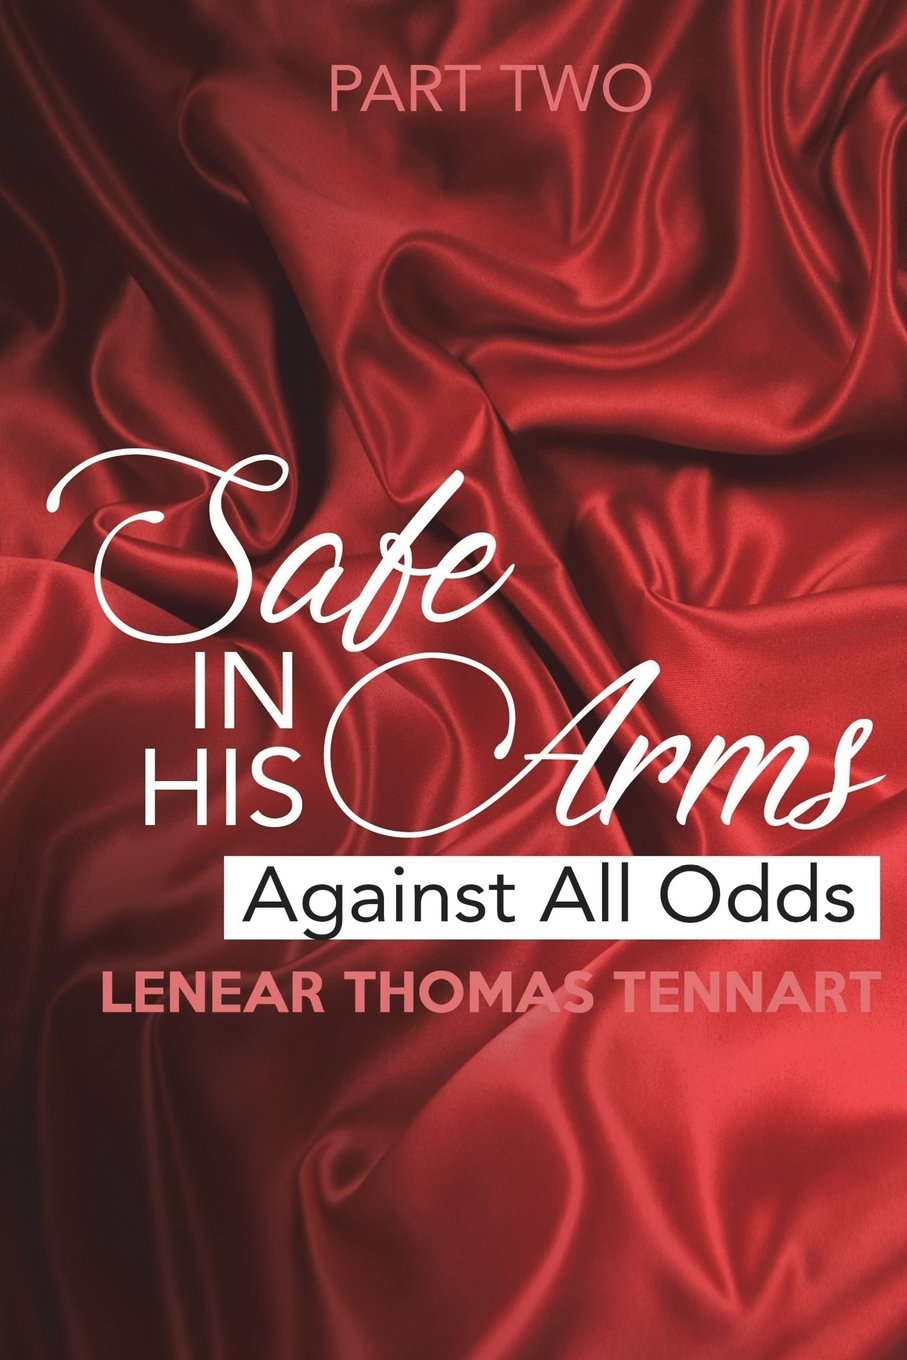 Read Online Safe In His Arms (Part Two): Against All Odds (Safe In His Arms Against All Odds) (Volume 2) pdf